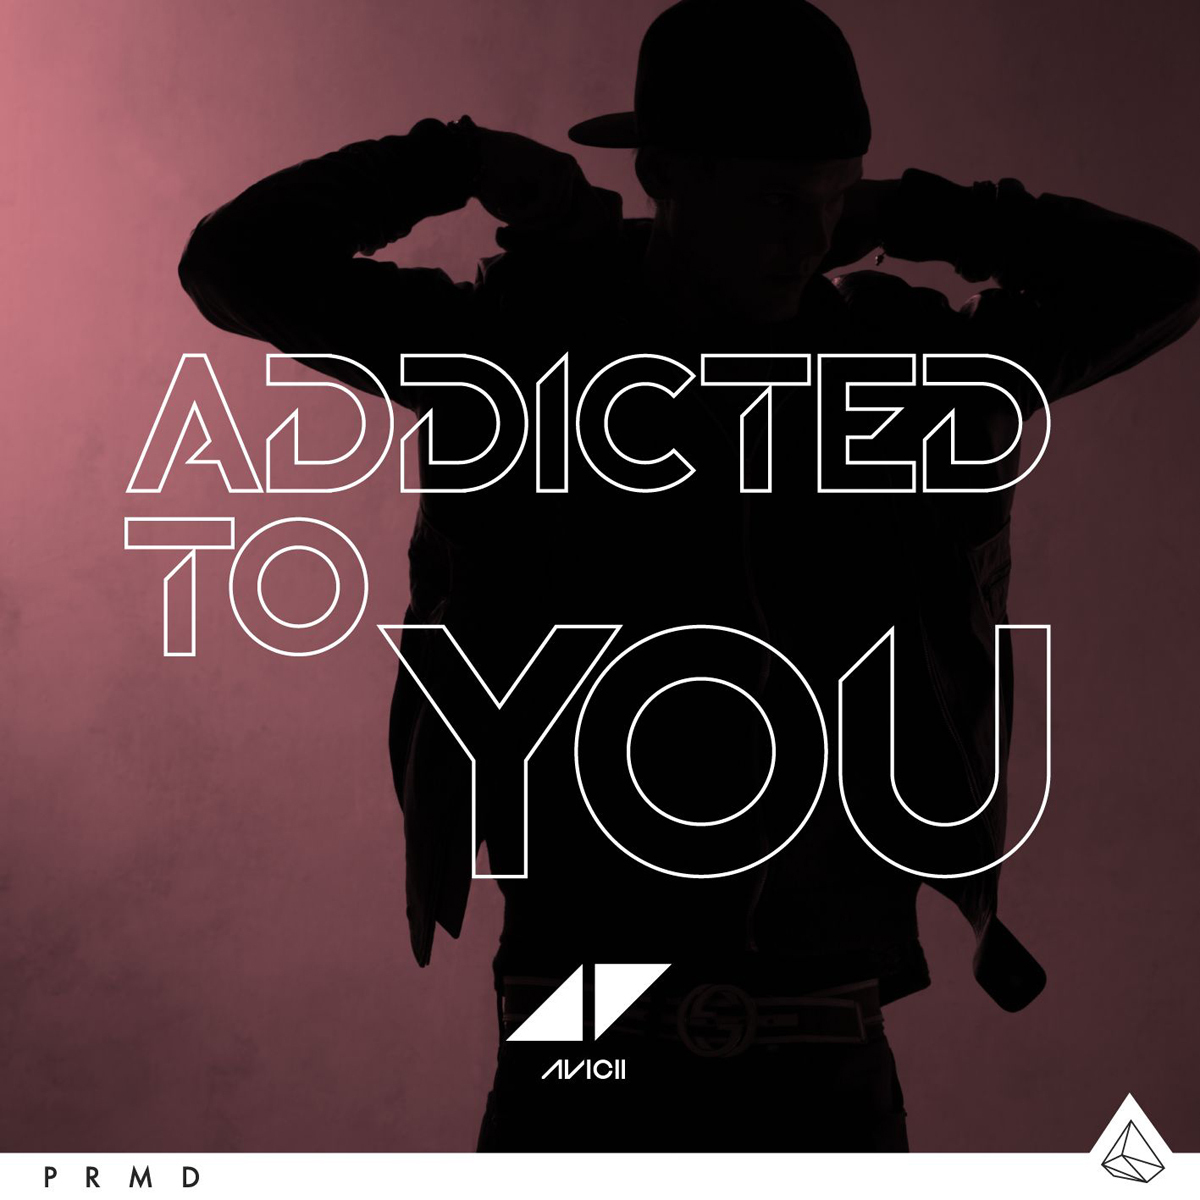 Cover: AVICII, ADDICTED TO YOU